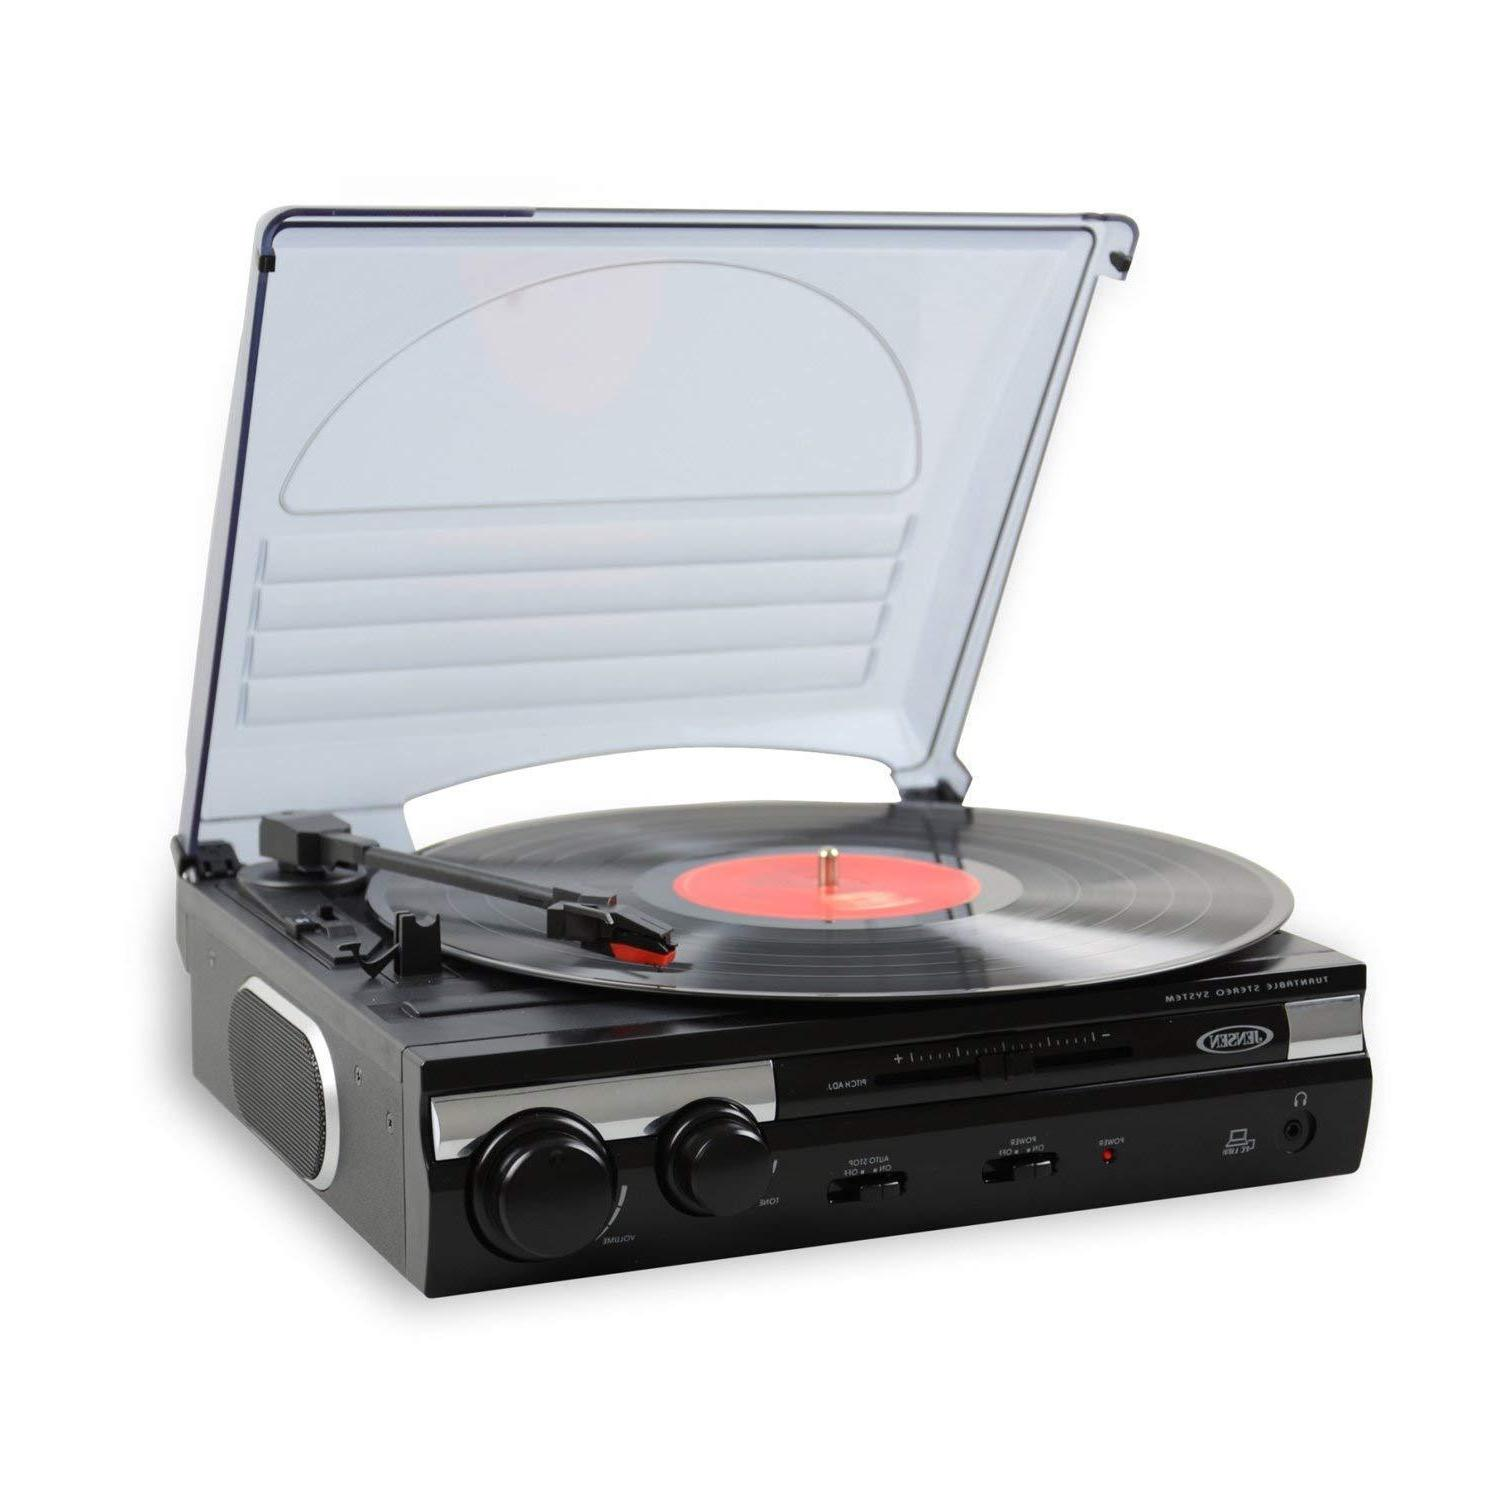 3 speed stereo record player turntable